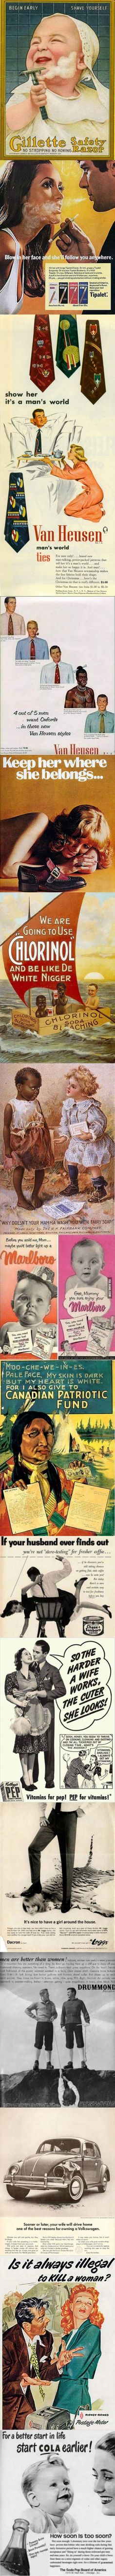 Some offensive ads that would be banned today